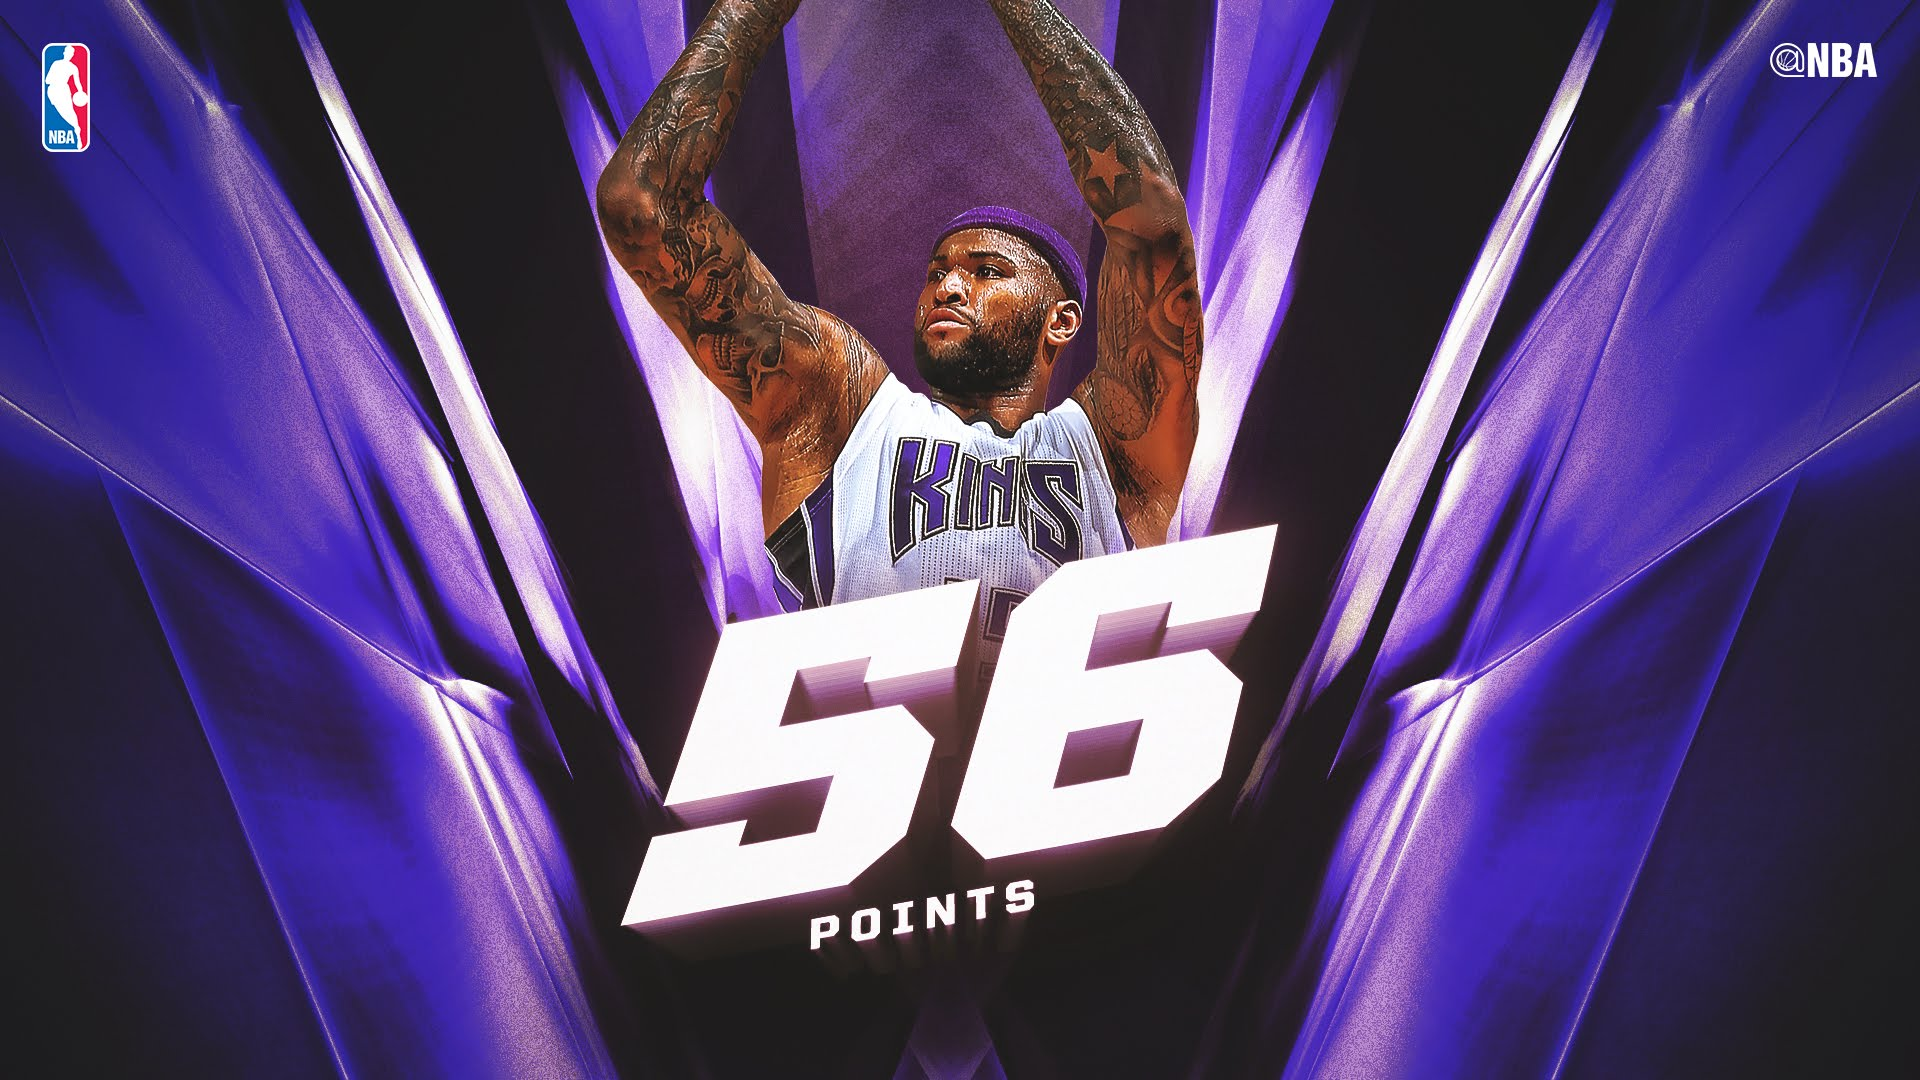 DeMarcus Cousins drops a 50 burger on the Charlotte Hornets